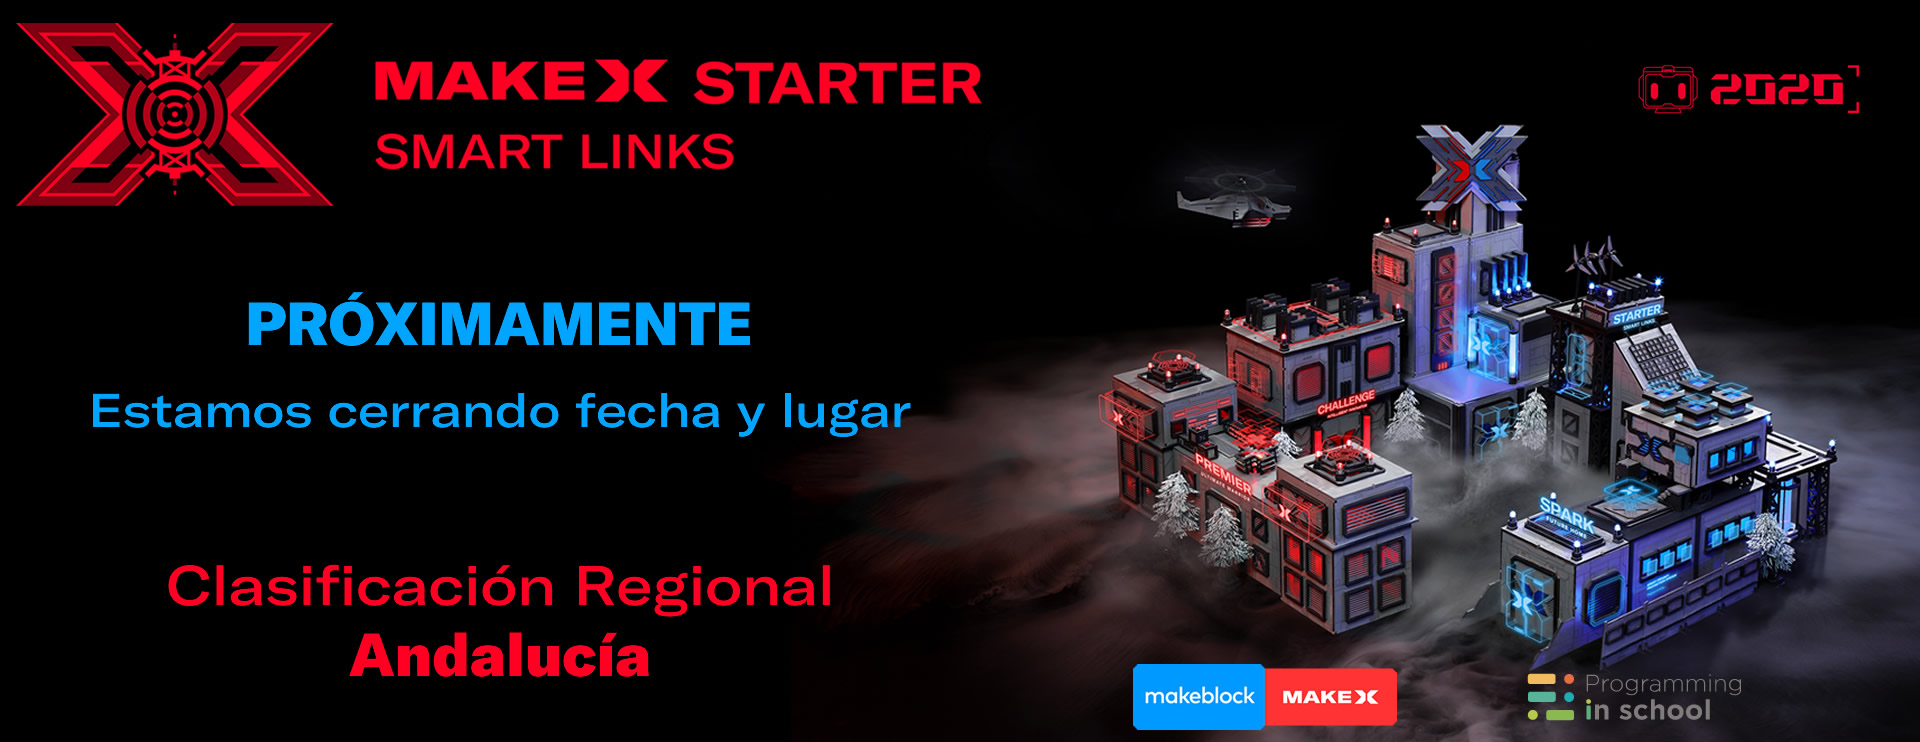 Banner MakeX Andalucia 2020 prox